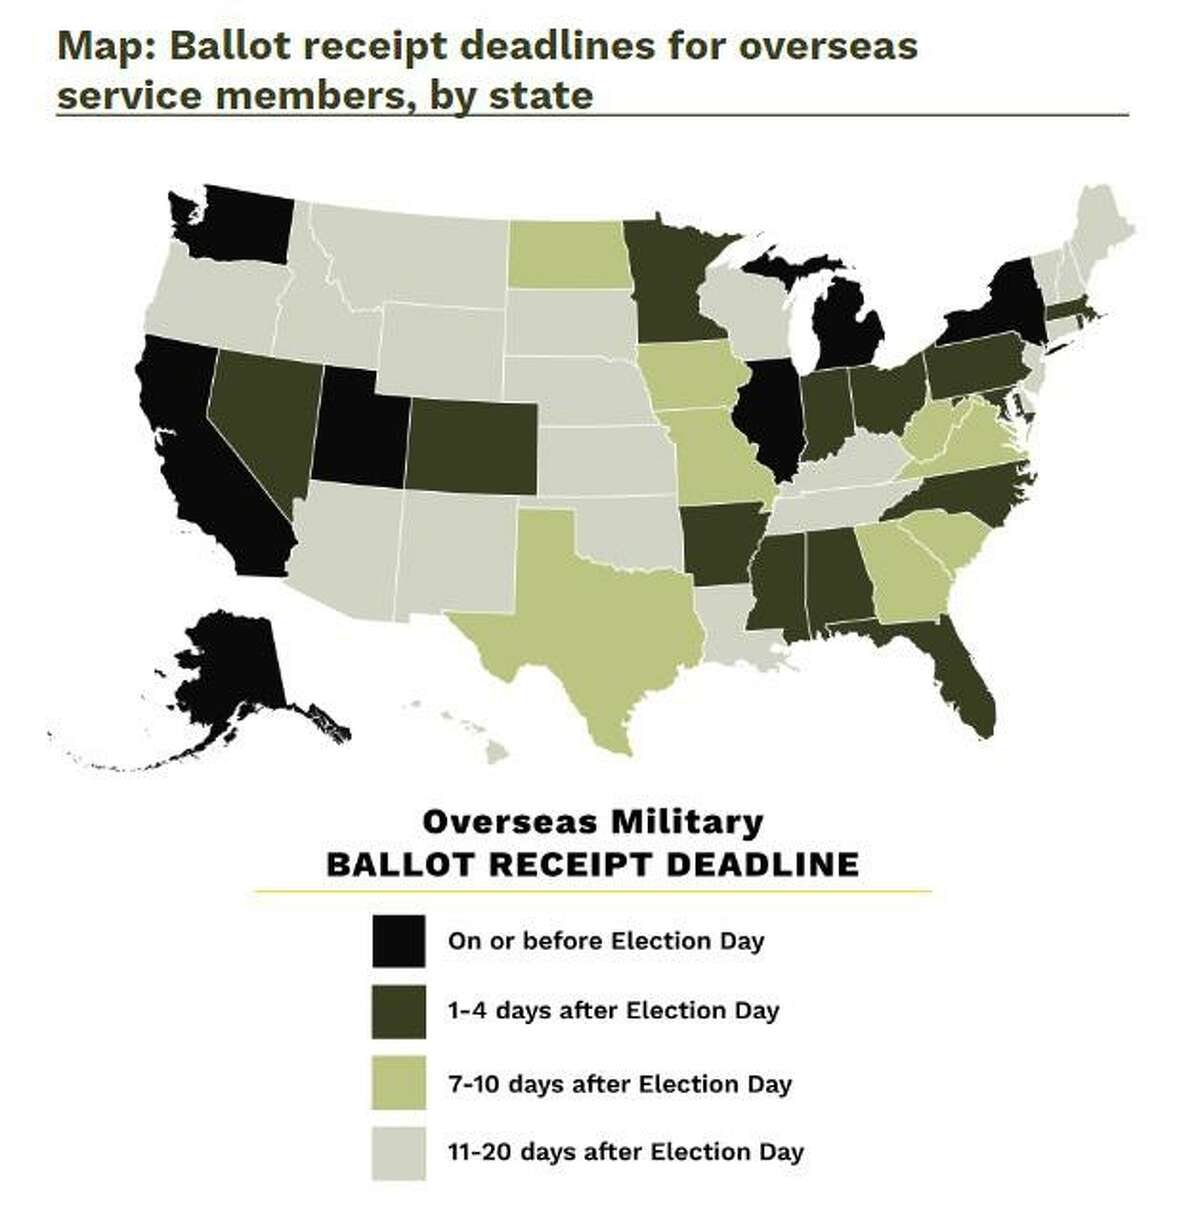 Count Every Hero's research report includes a graphic showing ballot receipt deadlines for overseas service members, by state. Texas will accept military ballots mailed by Nov. 3, and received by Nov. 9, allowing for a transit time of six days.